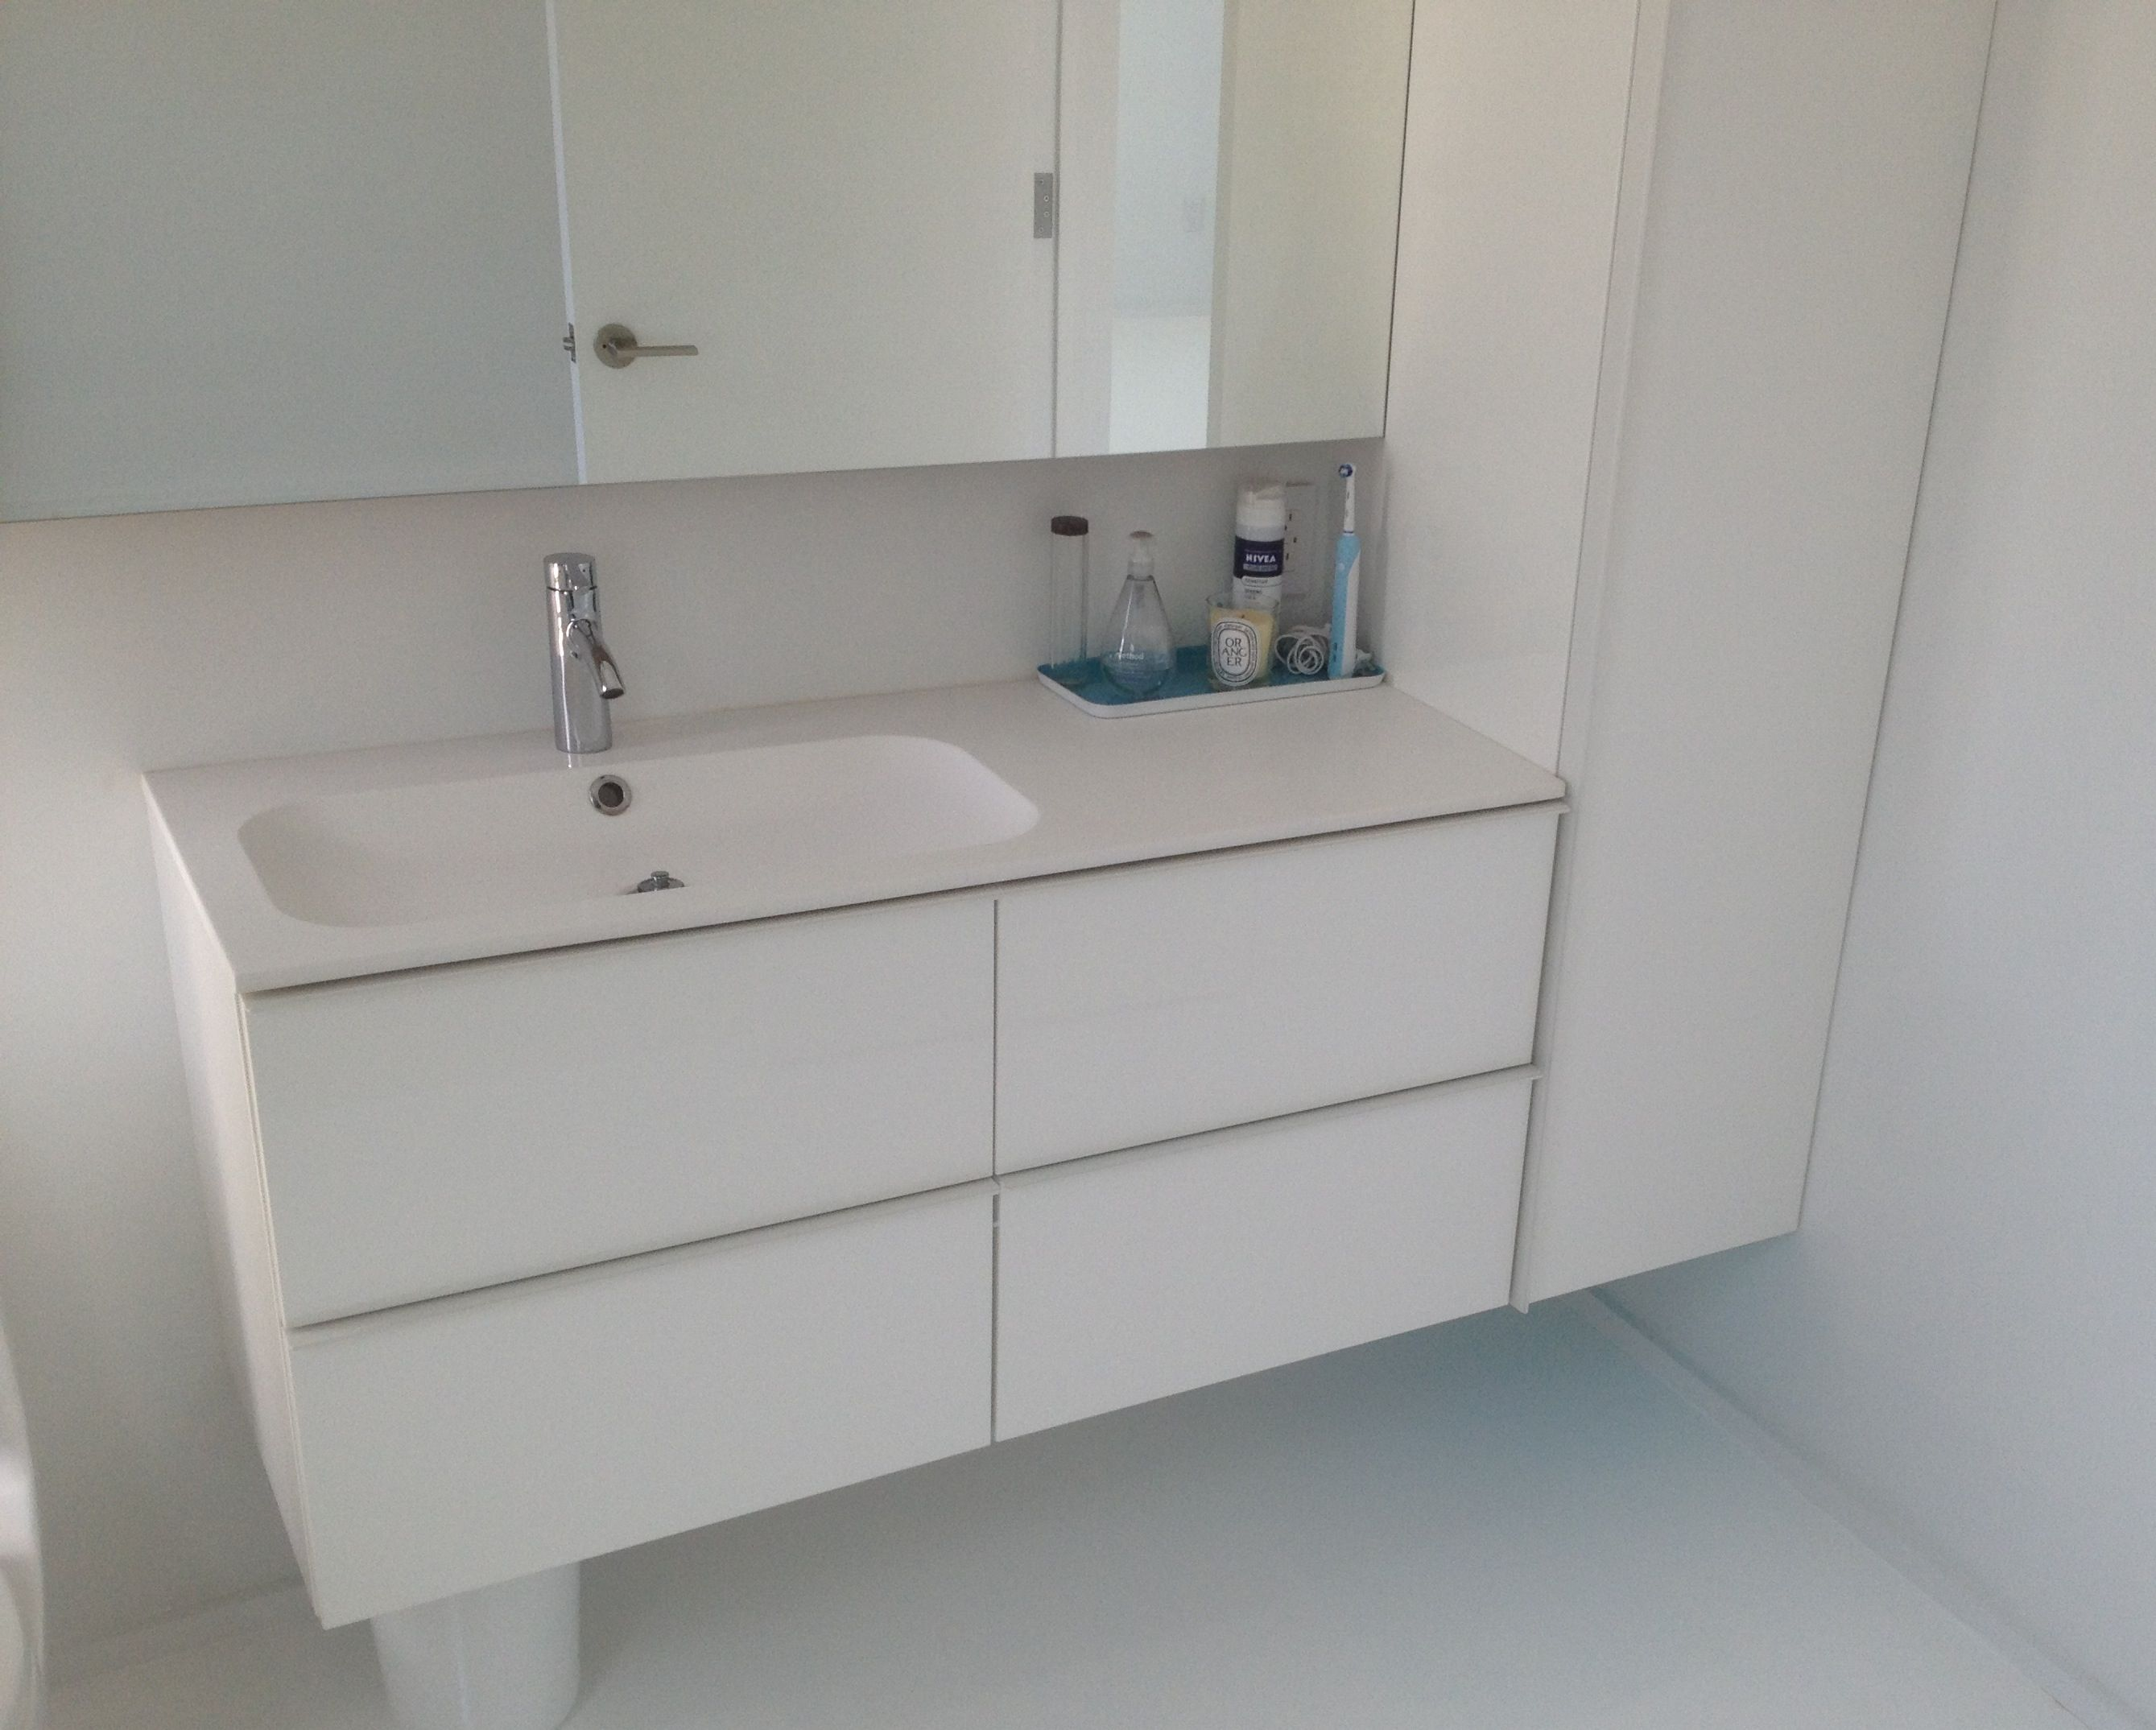 Ikea with different sink and wall